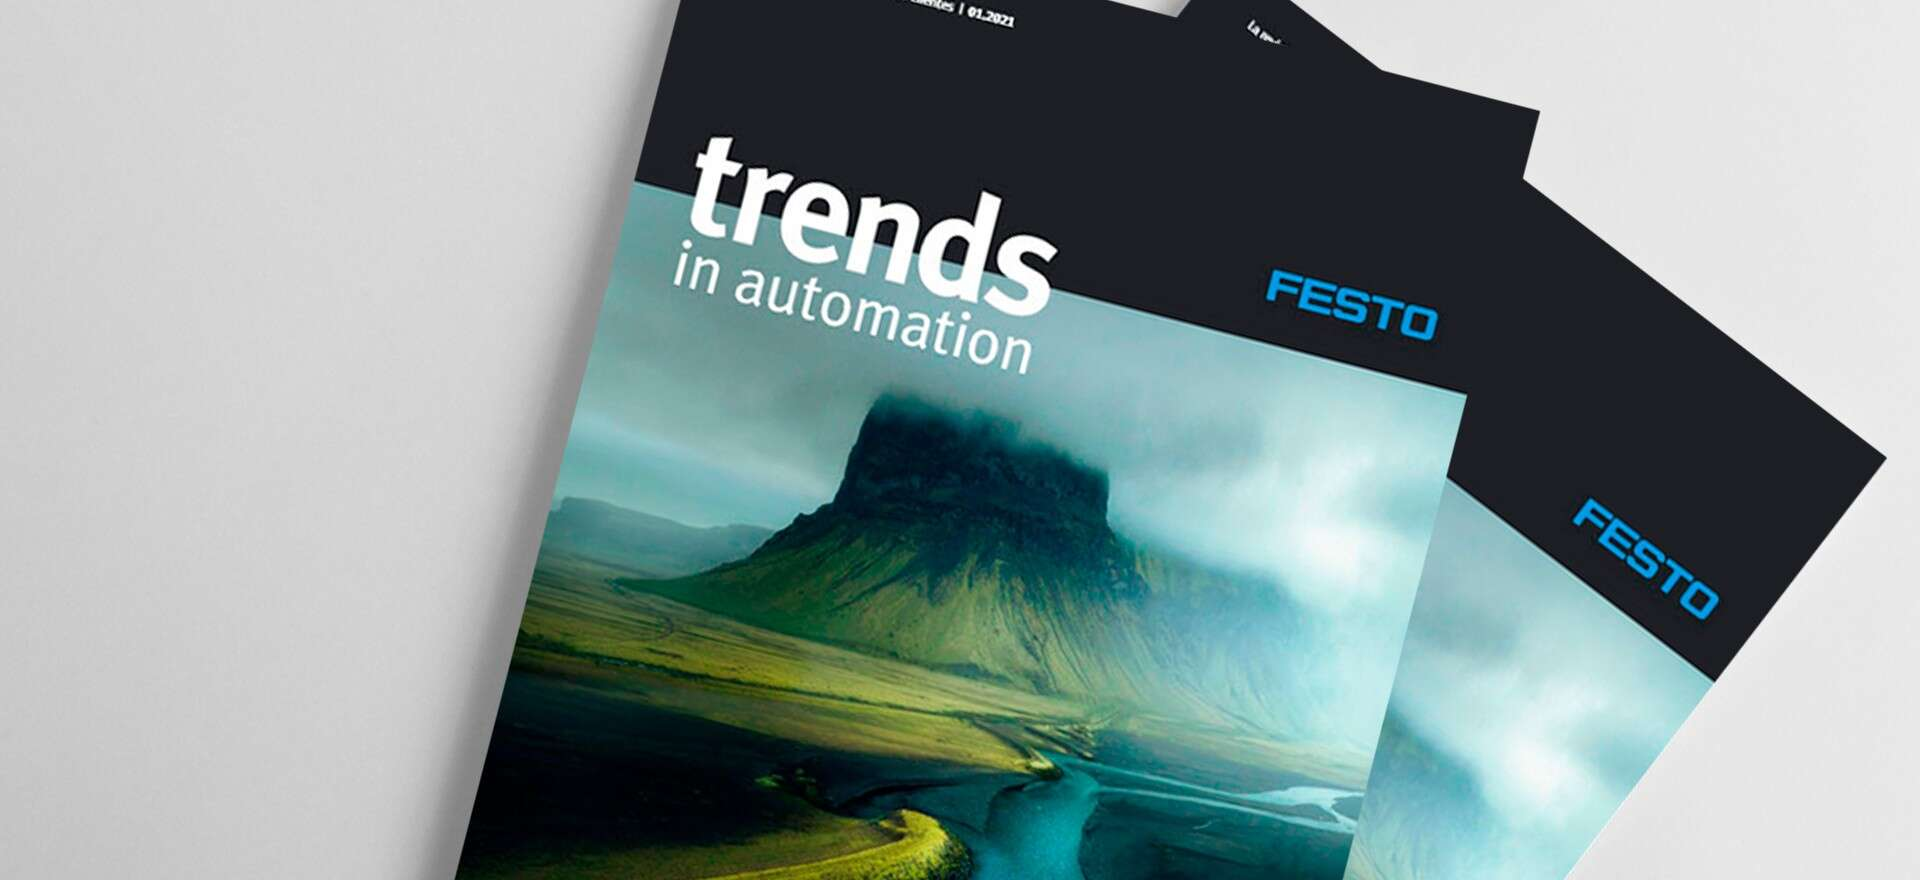 Trends in Automation PT